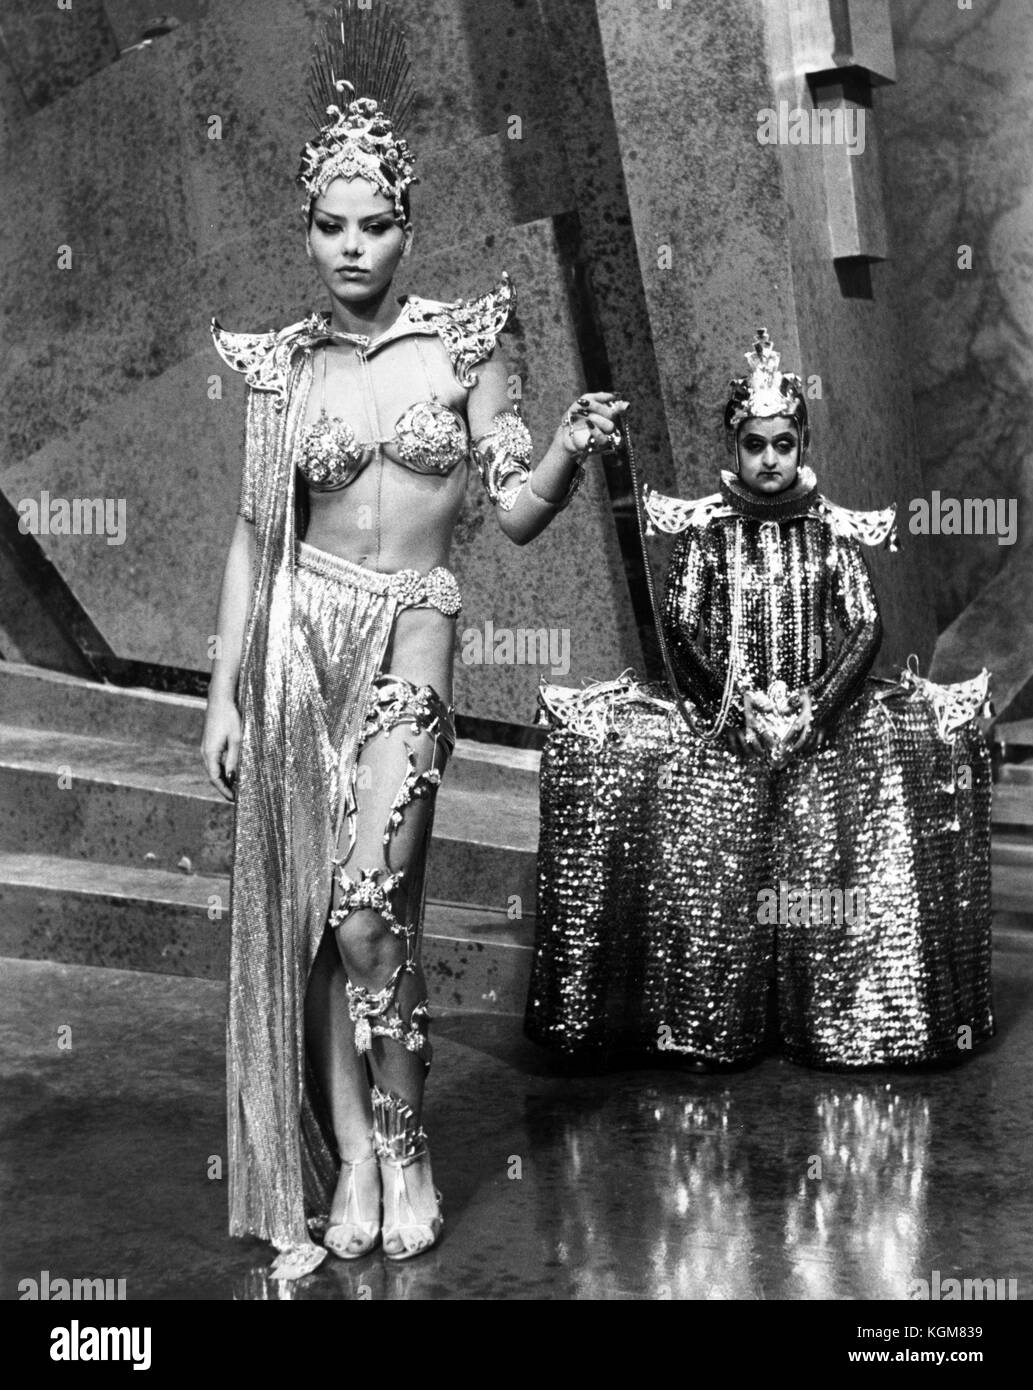 Flash Gordon High Resolution Stock Photography And Images Alamy